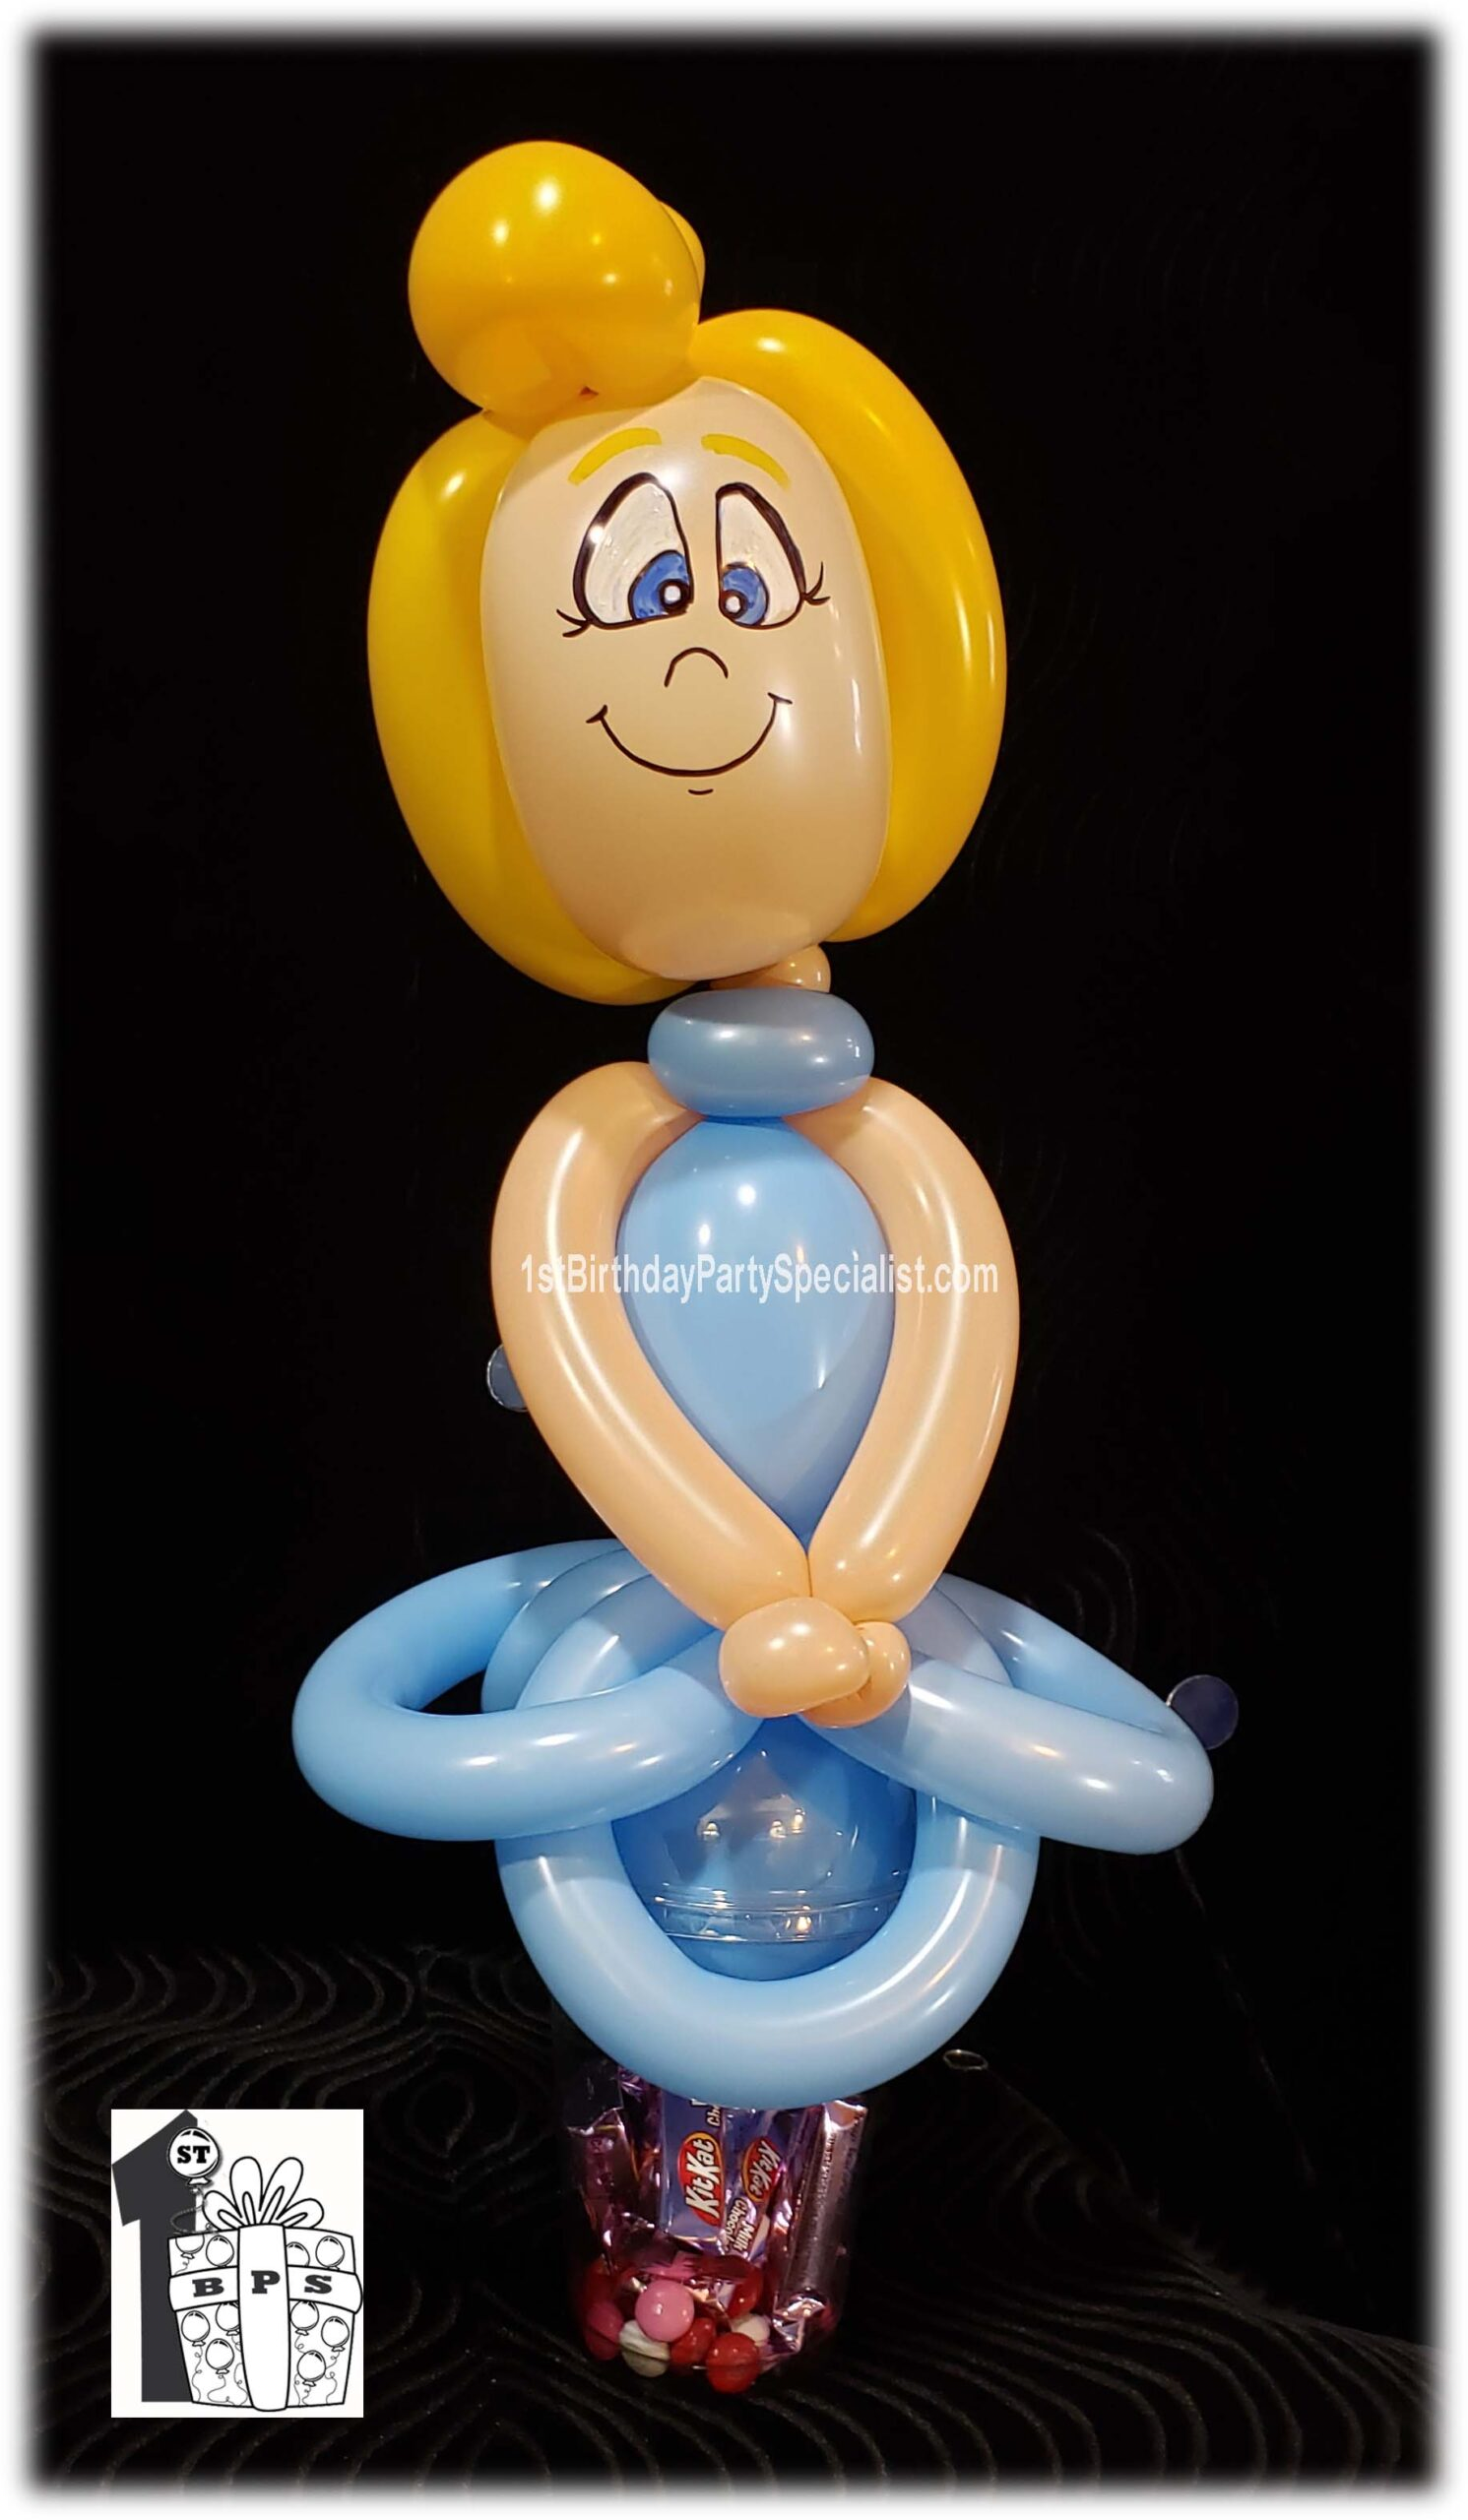 Princess Balloon Candy Cup perfect for birthday party giveaways.